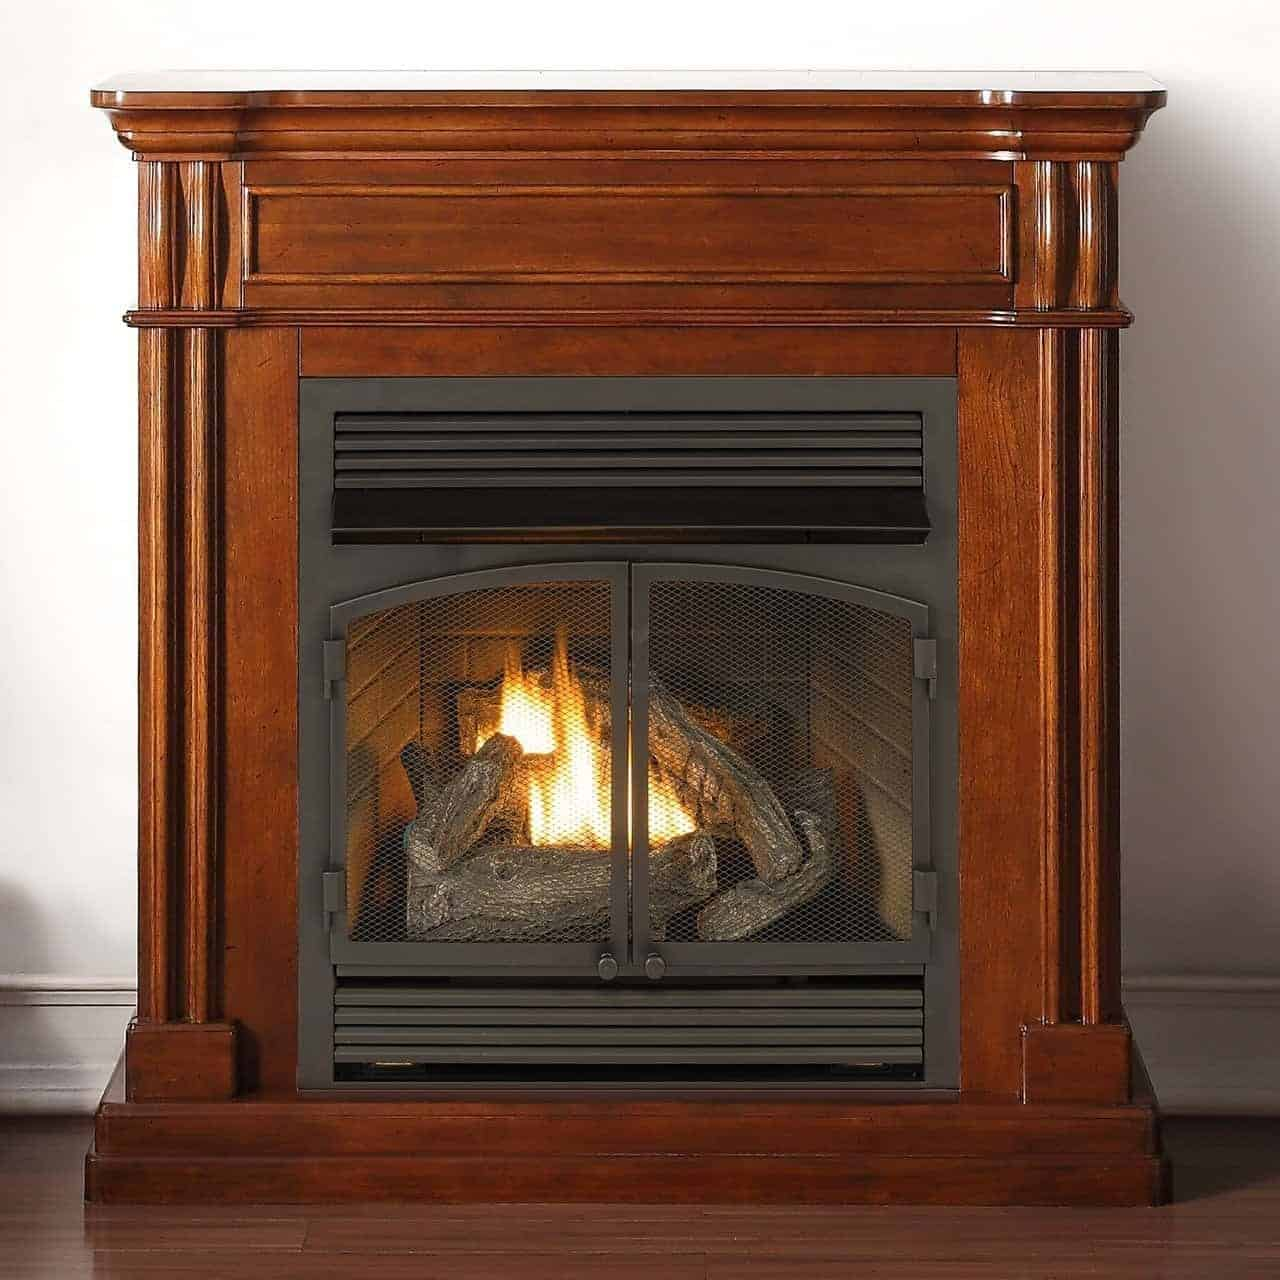 Duluth Forge Dual Fuel Vent Free Fireplace, 32,000 BTU, Remote Control, Autumn Spice Finish